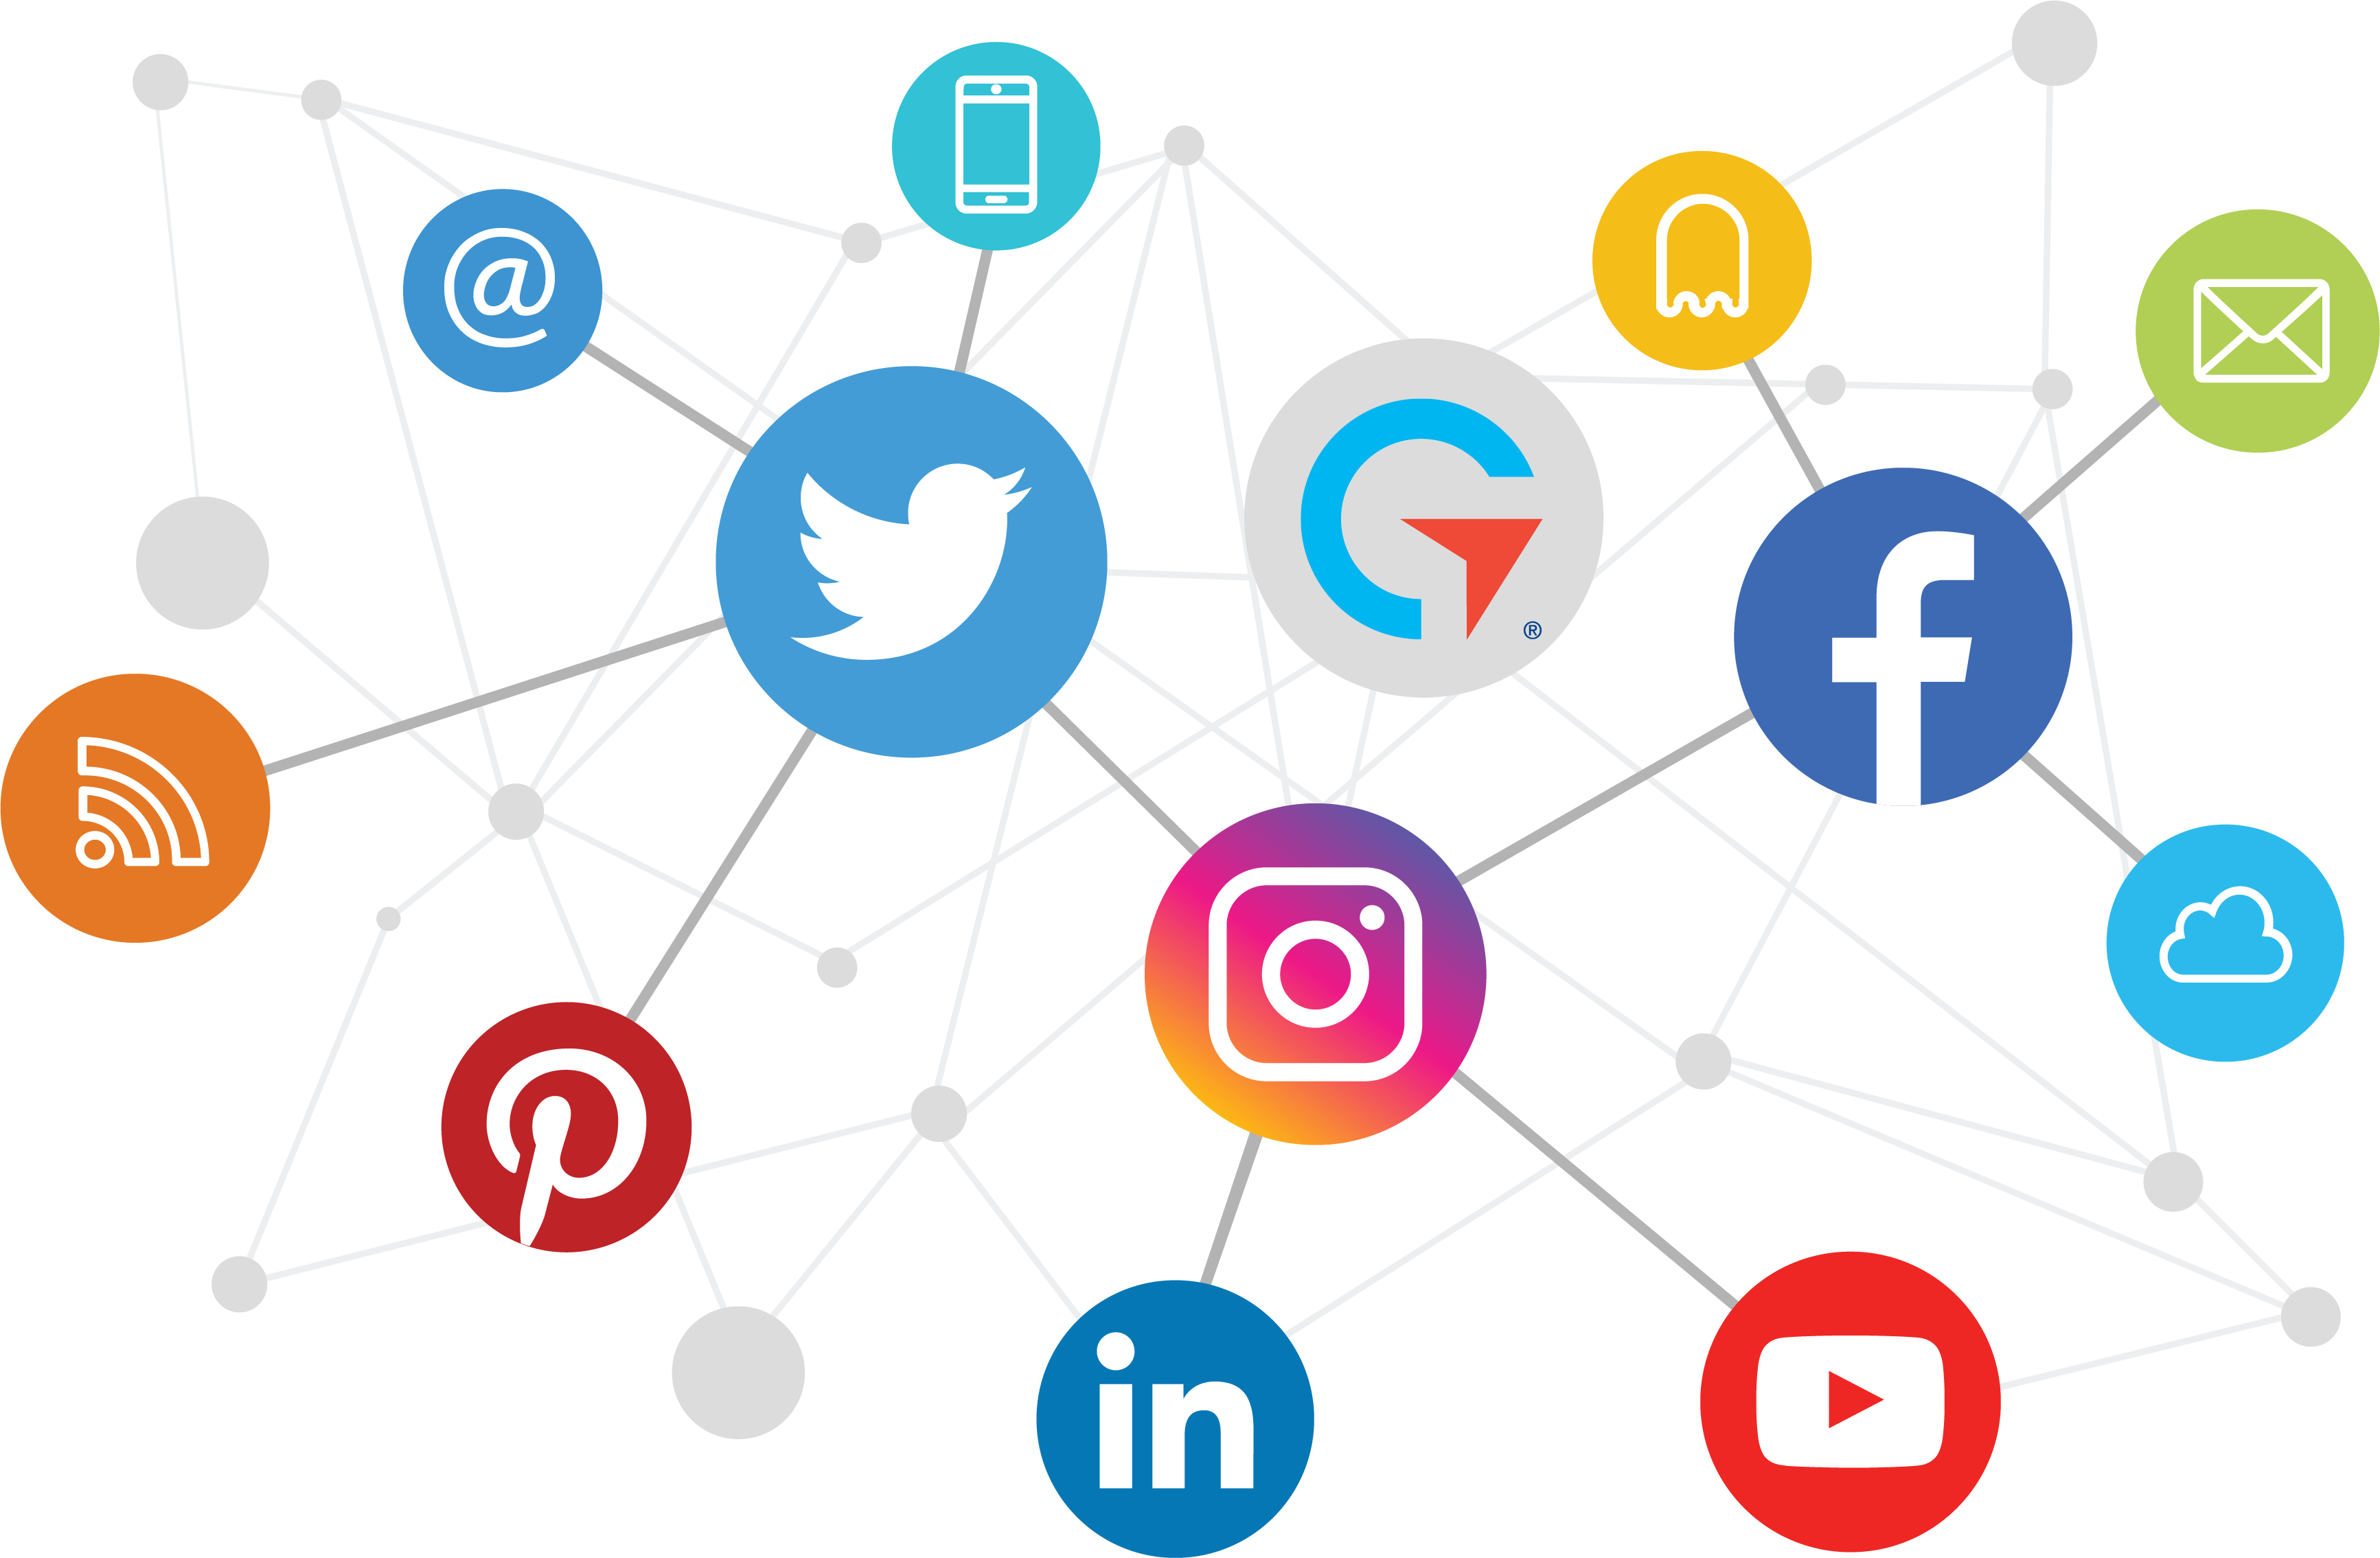 A graphic illustrating the interconnected nature of social media marketing